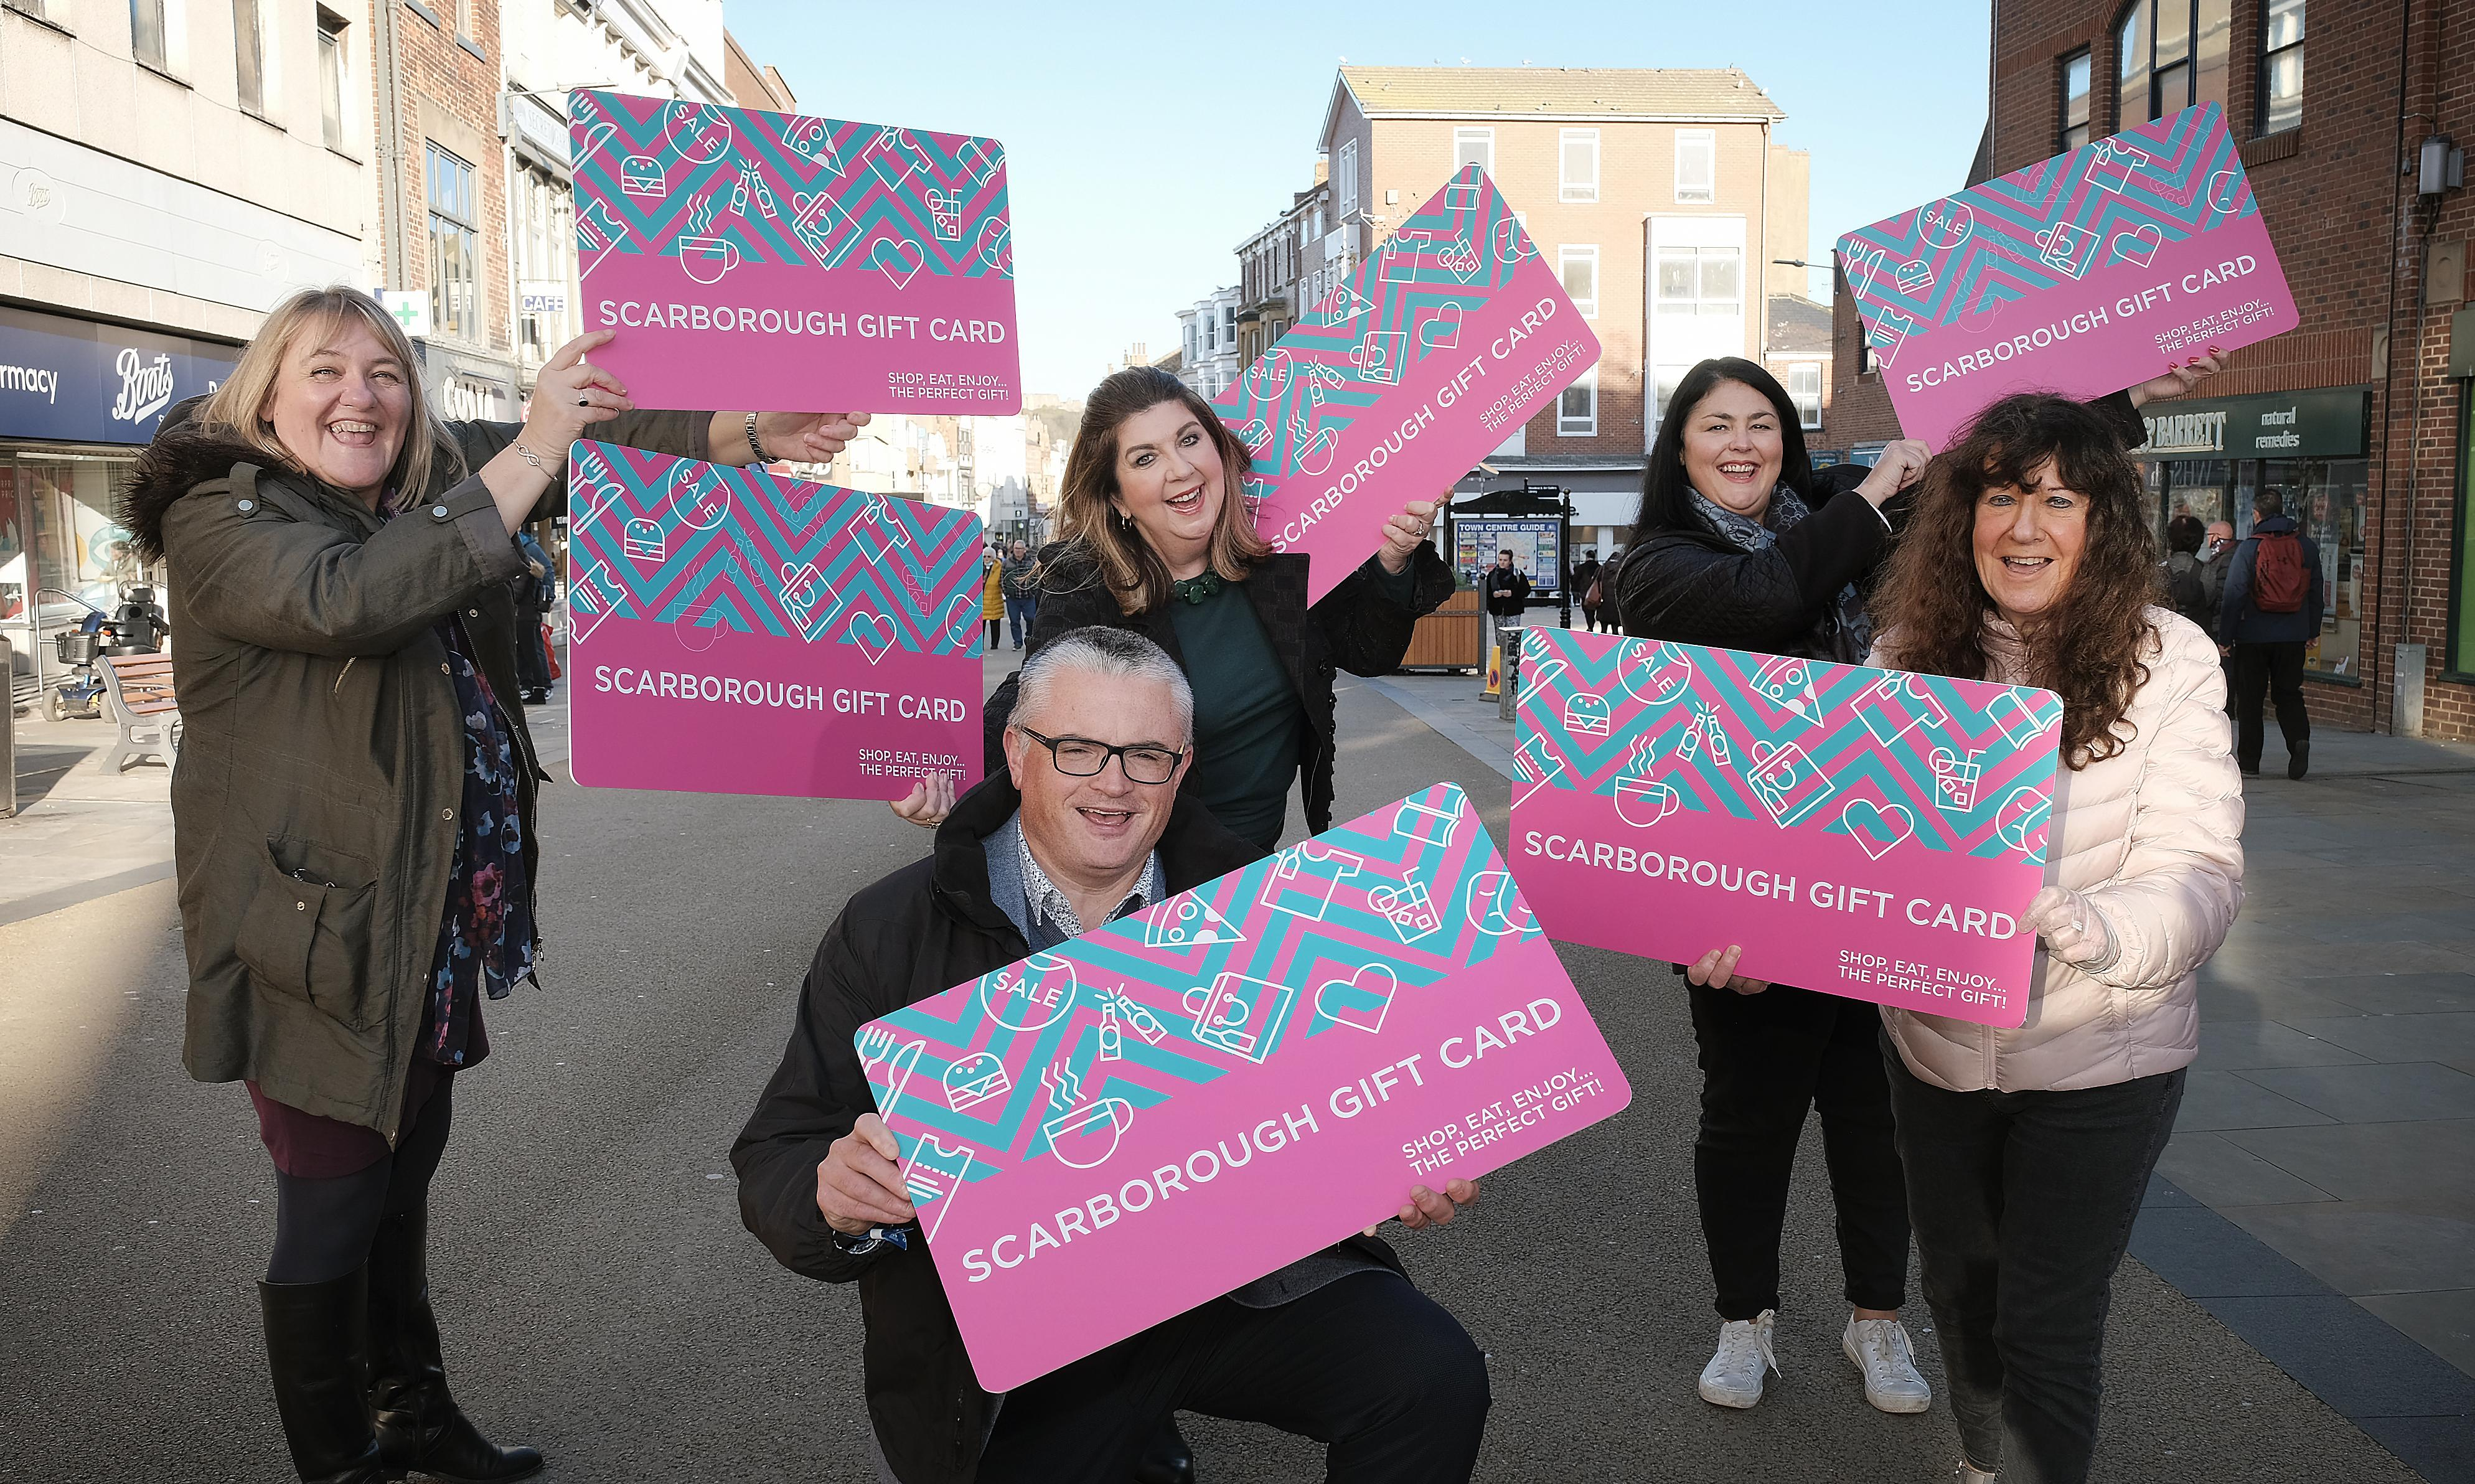 Public and private sector partners launch Scarborough Gift Card